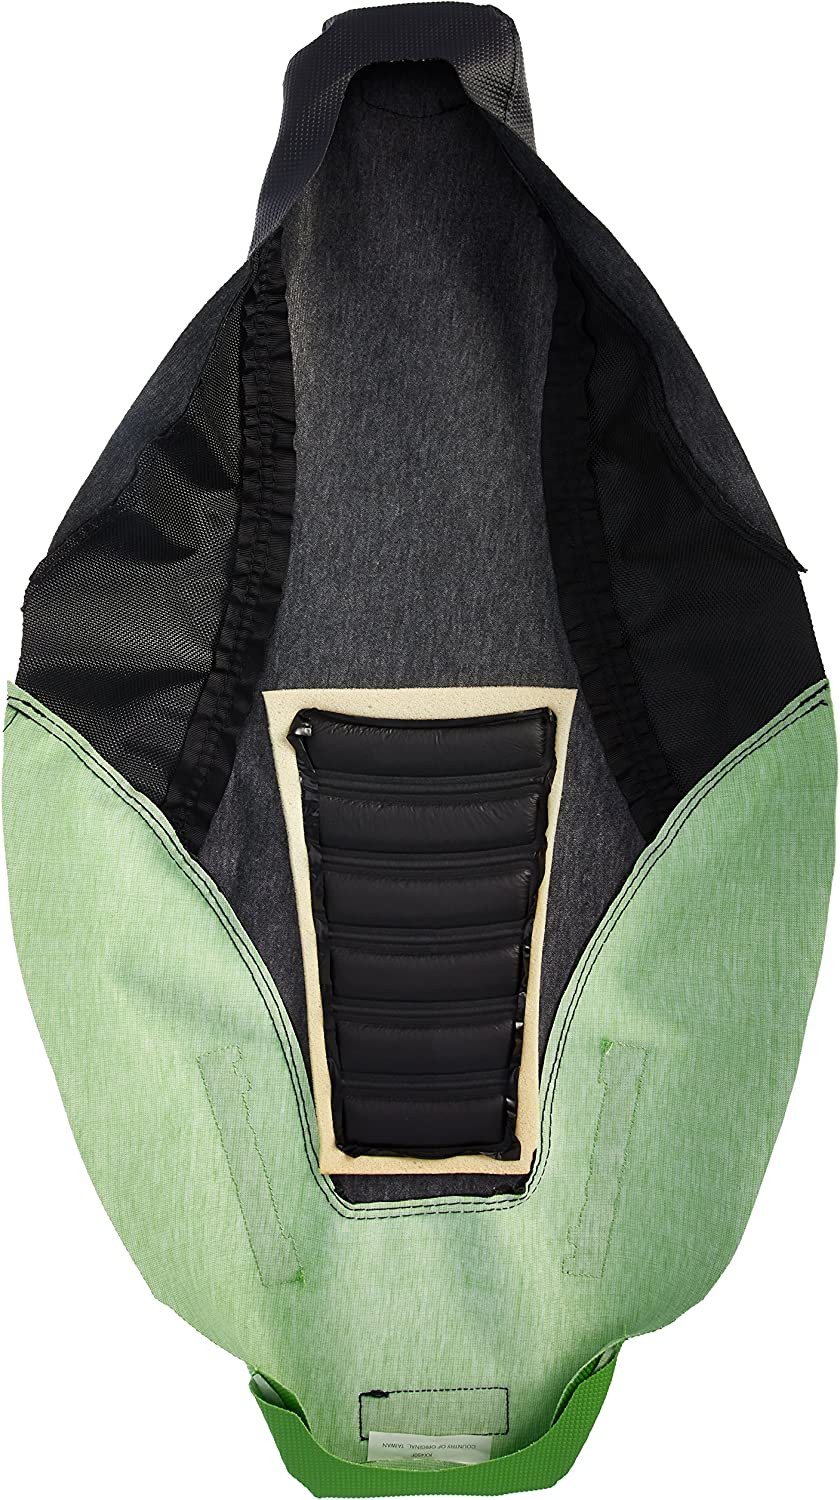 Factory Effex 12-28130 TC4 Seat Cover with Bump